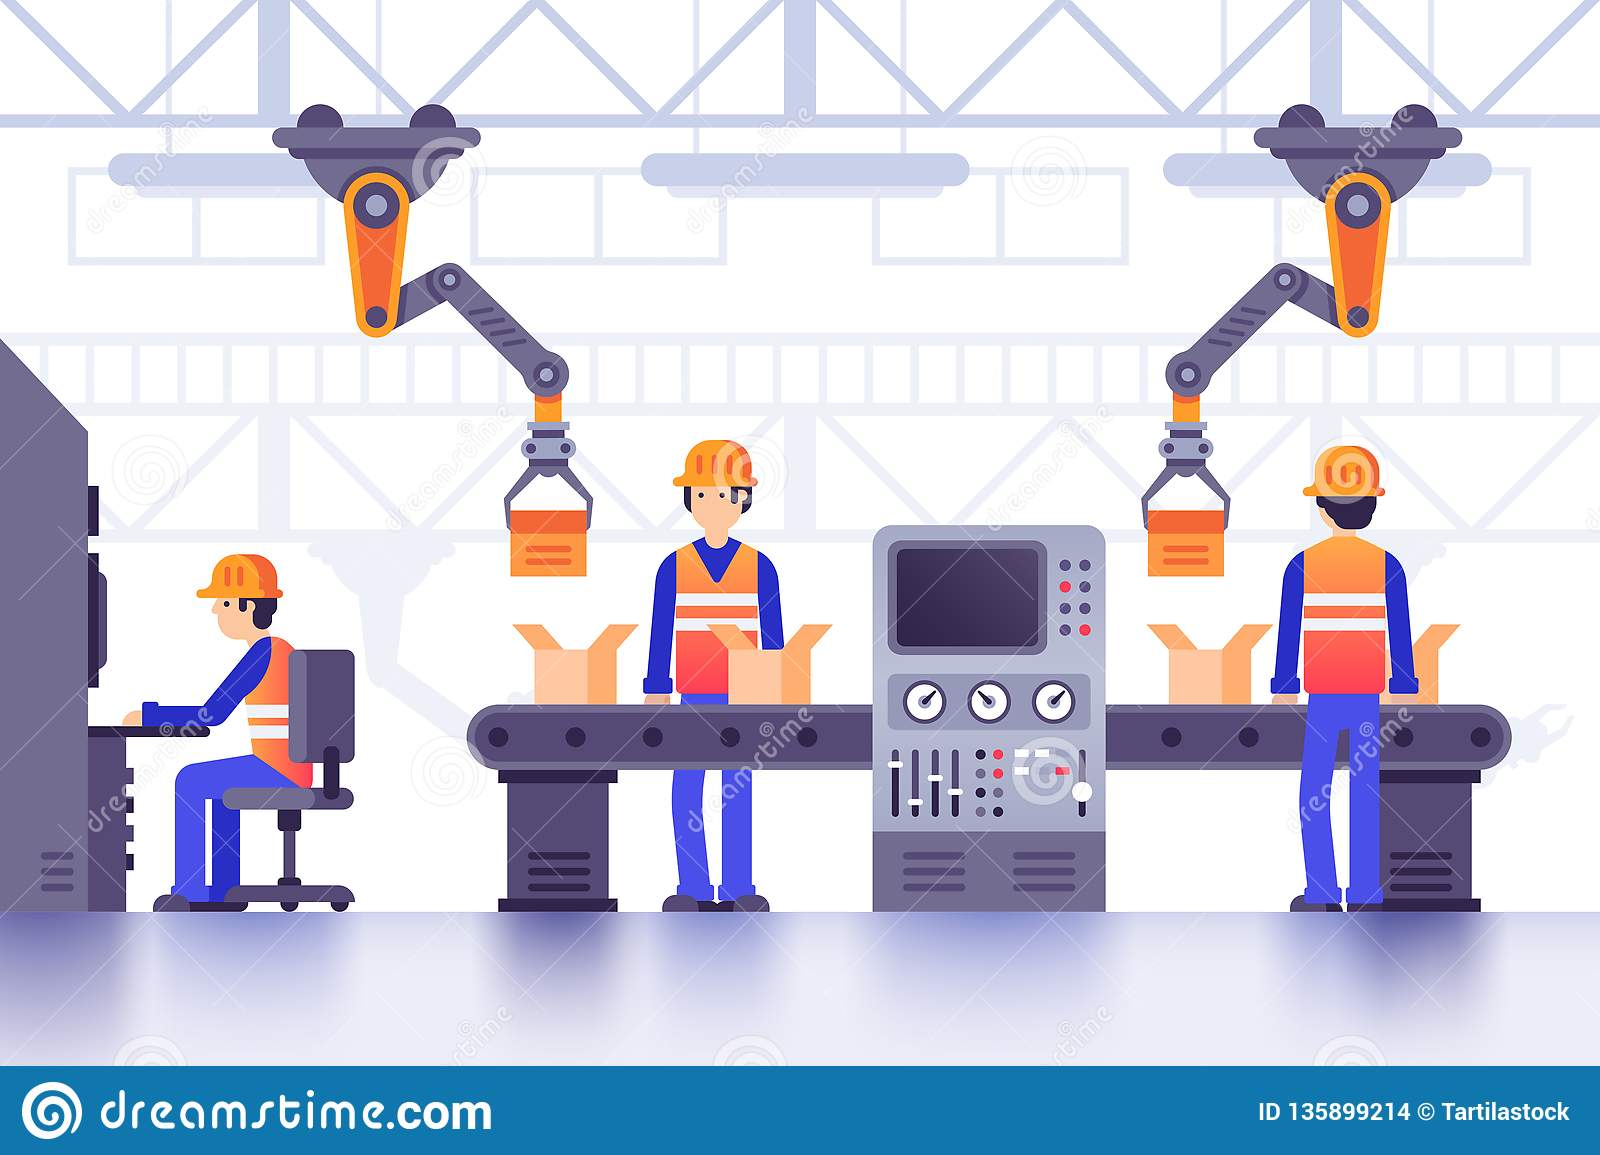 smart-manufacture-factory-conveyor-modern-industrial-manufacturing-computer-controlled-machines-line-vector-illustration-135899214.jpg